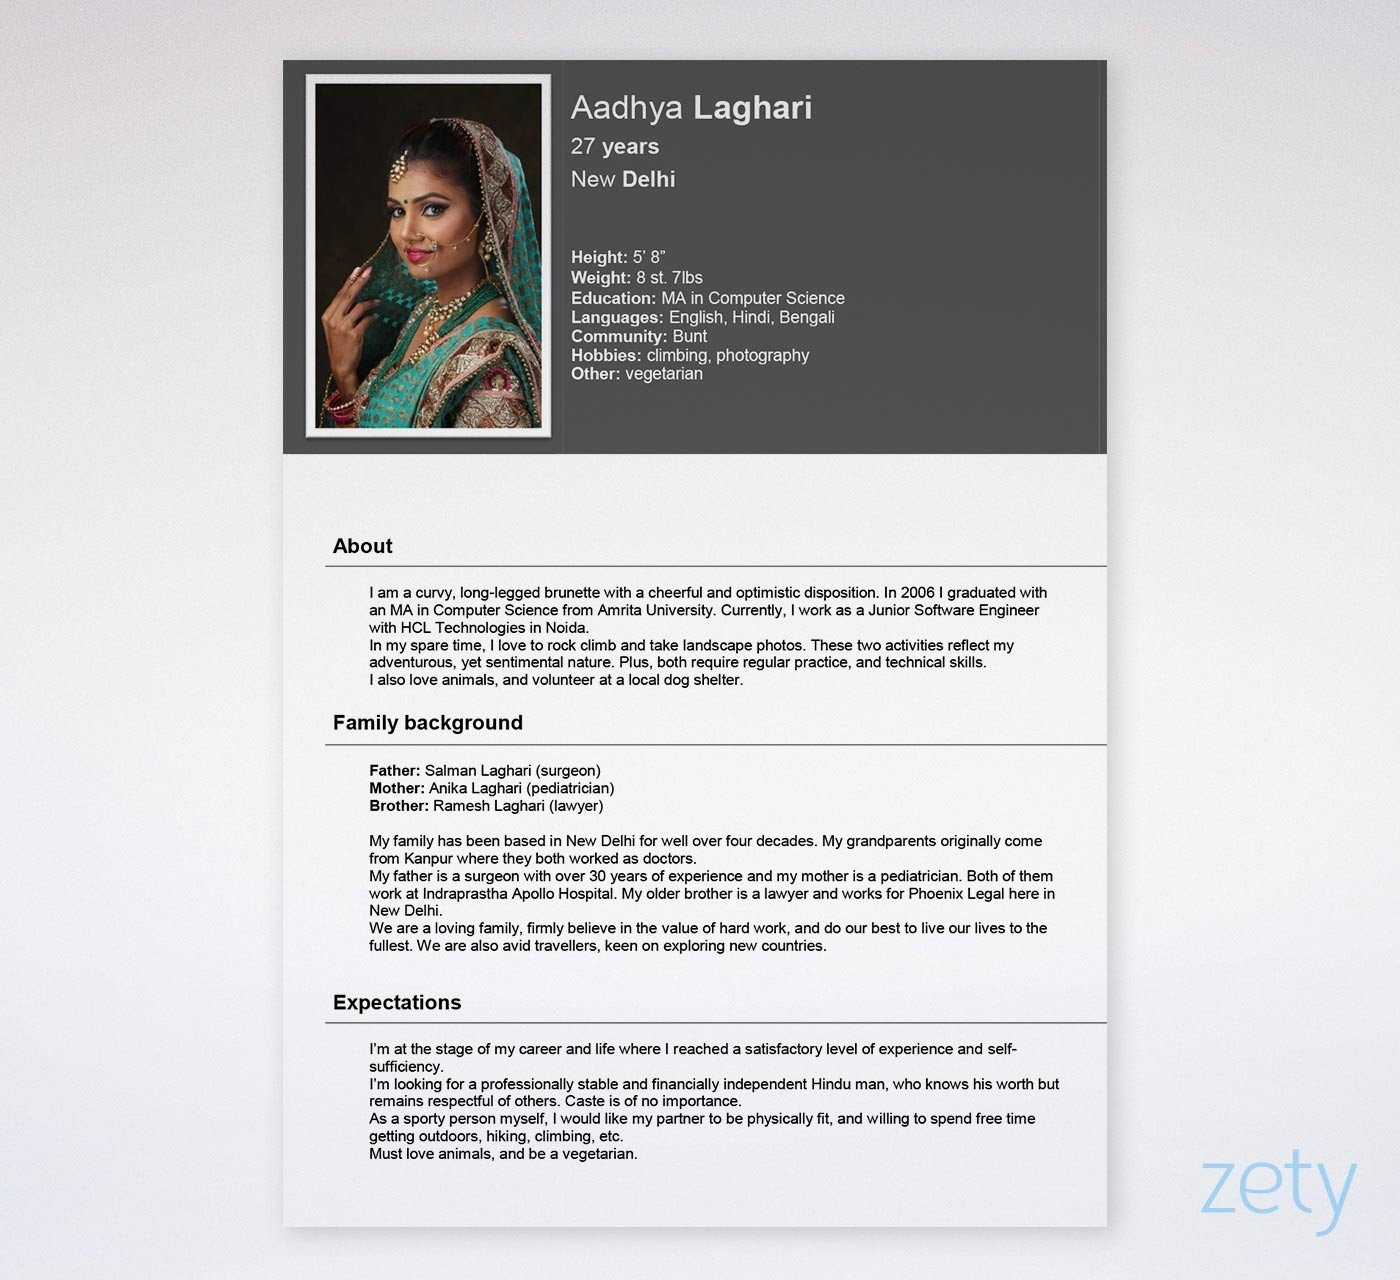 biodata format  free templates for a job  u0026 marriage  free download